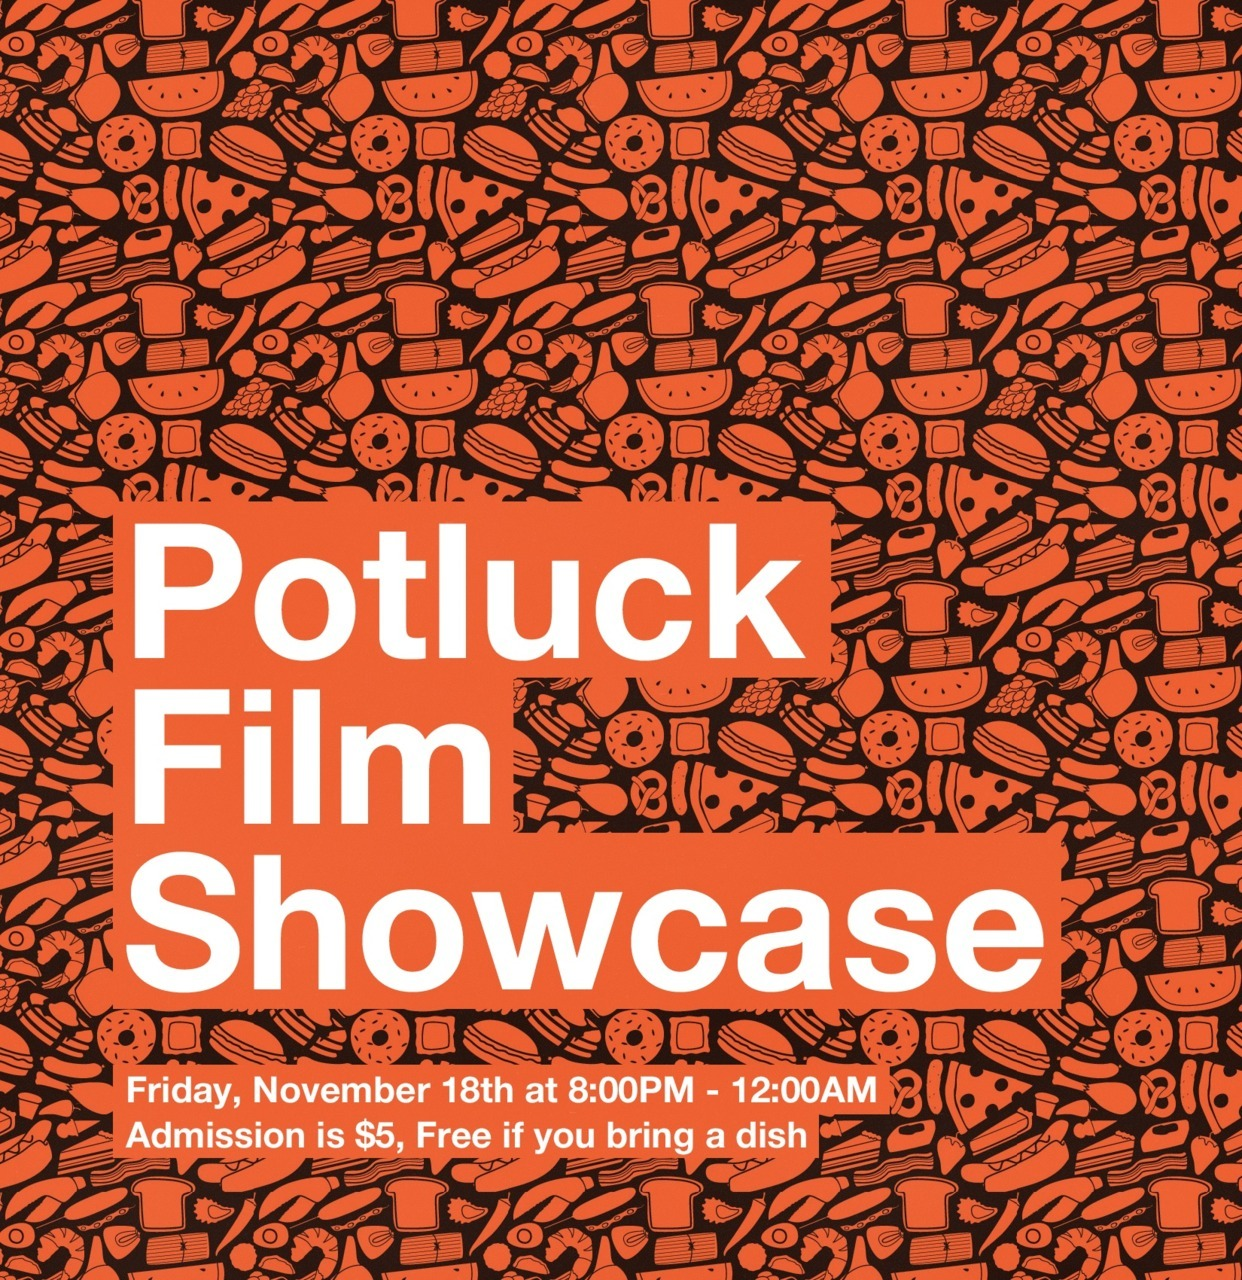 We're looking for a few good films. Brick & Mortar is accepting submissions for the Potluck Film Showcase on Friday, Nov. 18, 2011 in our studio space in Historic Cocoa Village. For all you local film producers, directors, writers, and enthusiasts, this is a perfect opportunity to share your passion, eat great food, and meet good people.  And, we've extended the deadline! Send your entry to denny@brickandmortarbuilt.com by Nov. 10.